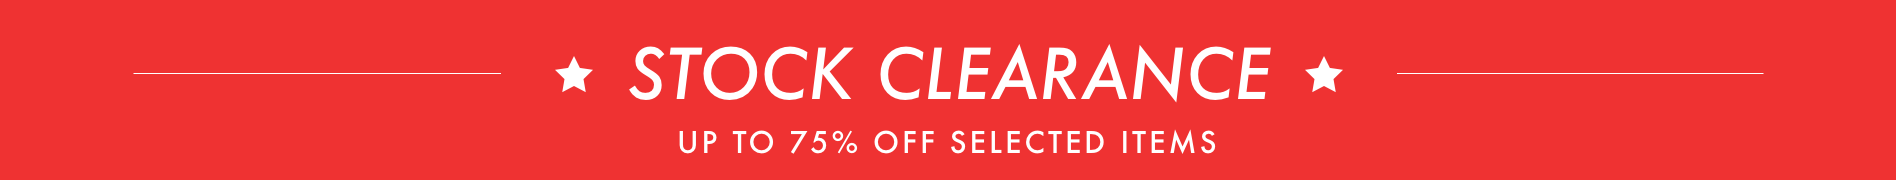 Stock Clearance - up to 75% off